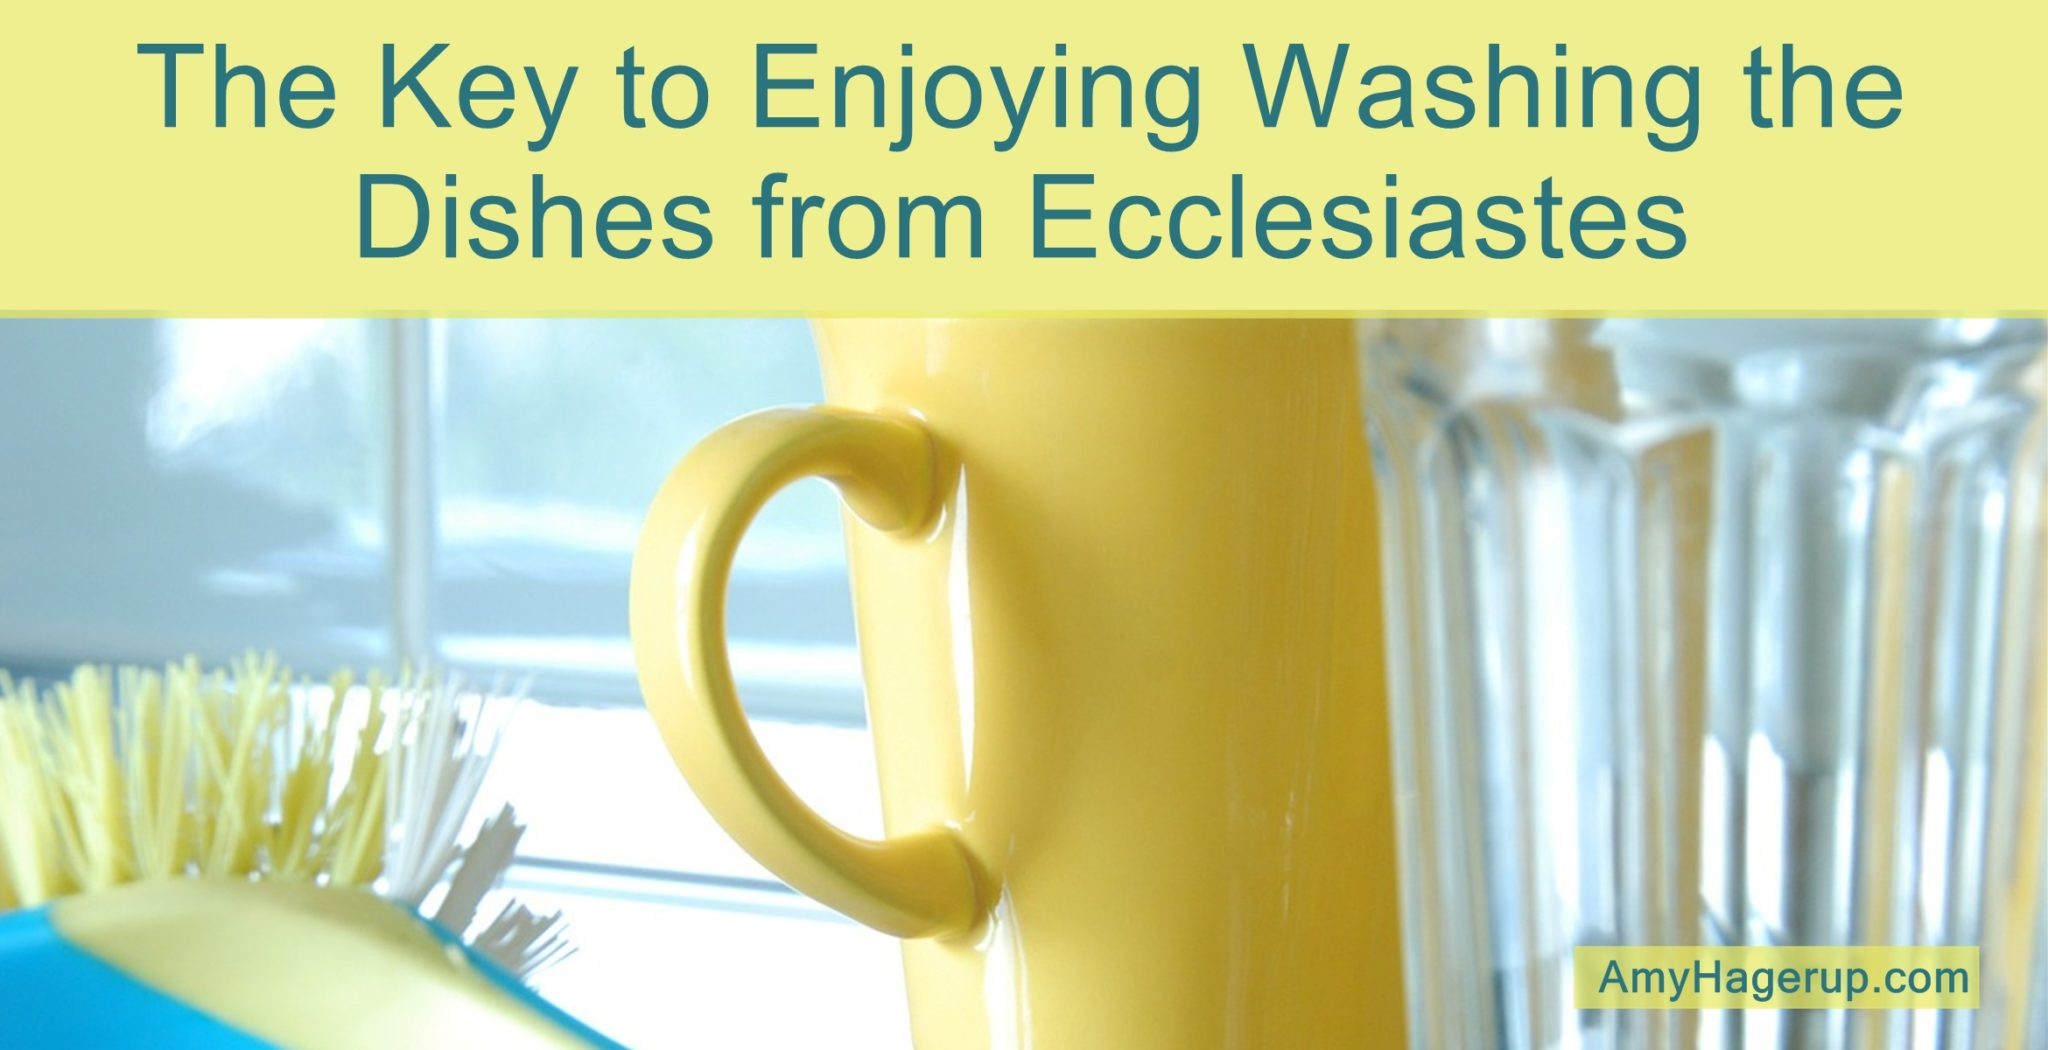 Here is an interesting perspective on enjoying washing the dishes as learned from Ecclesiastes.